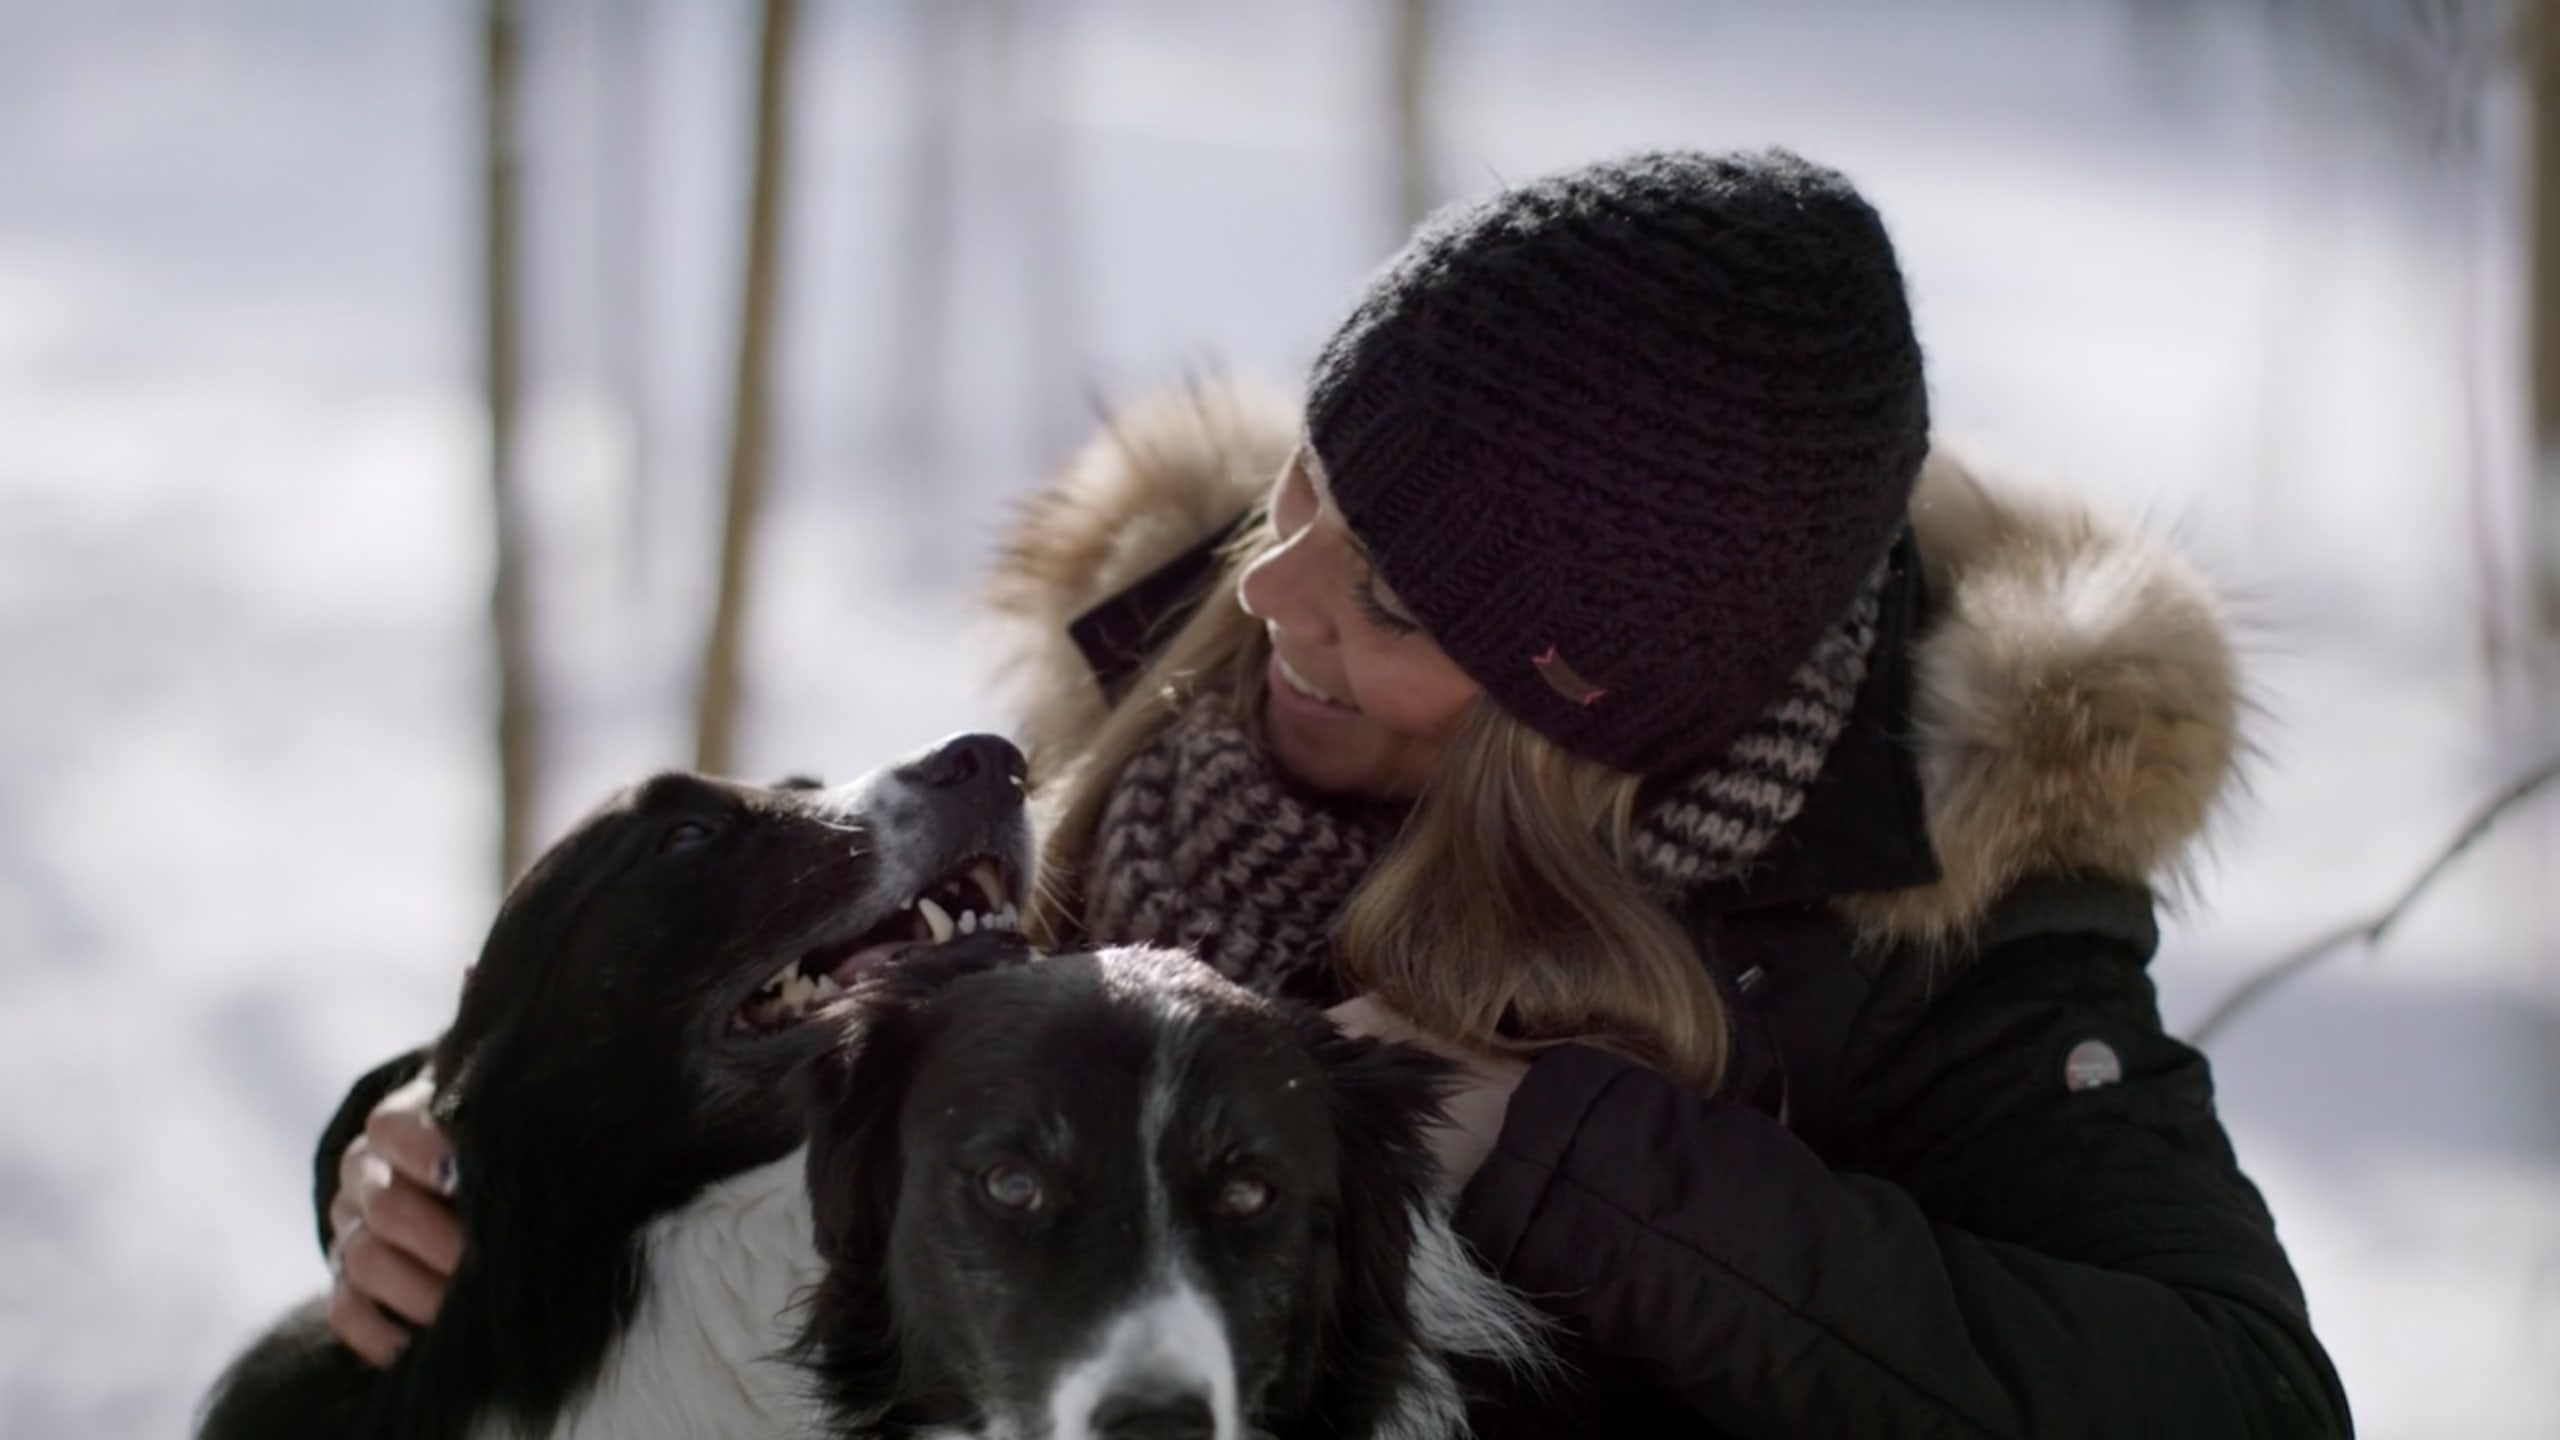 Amber playing with her two dogs in the snow